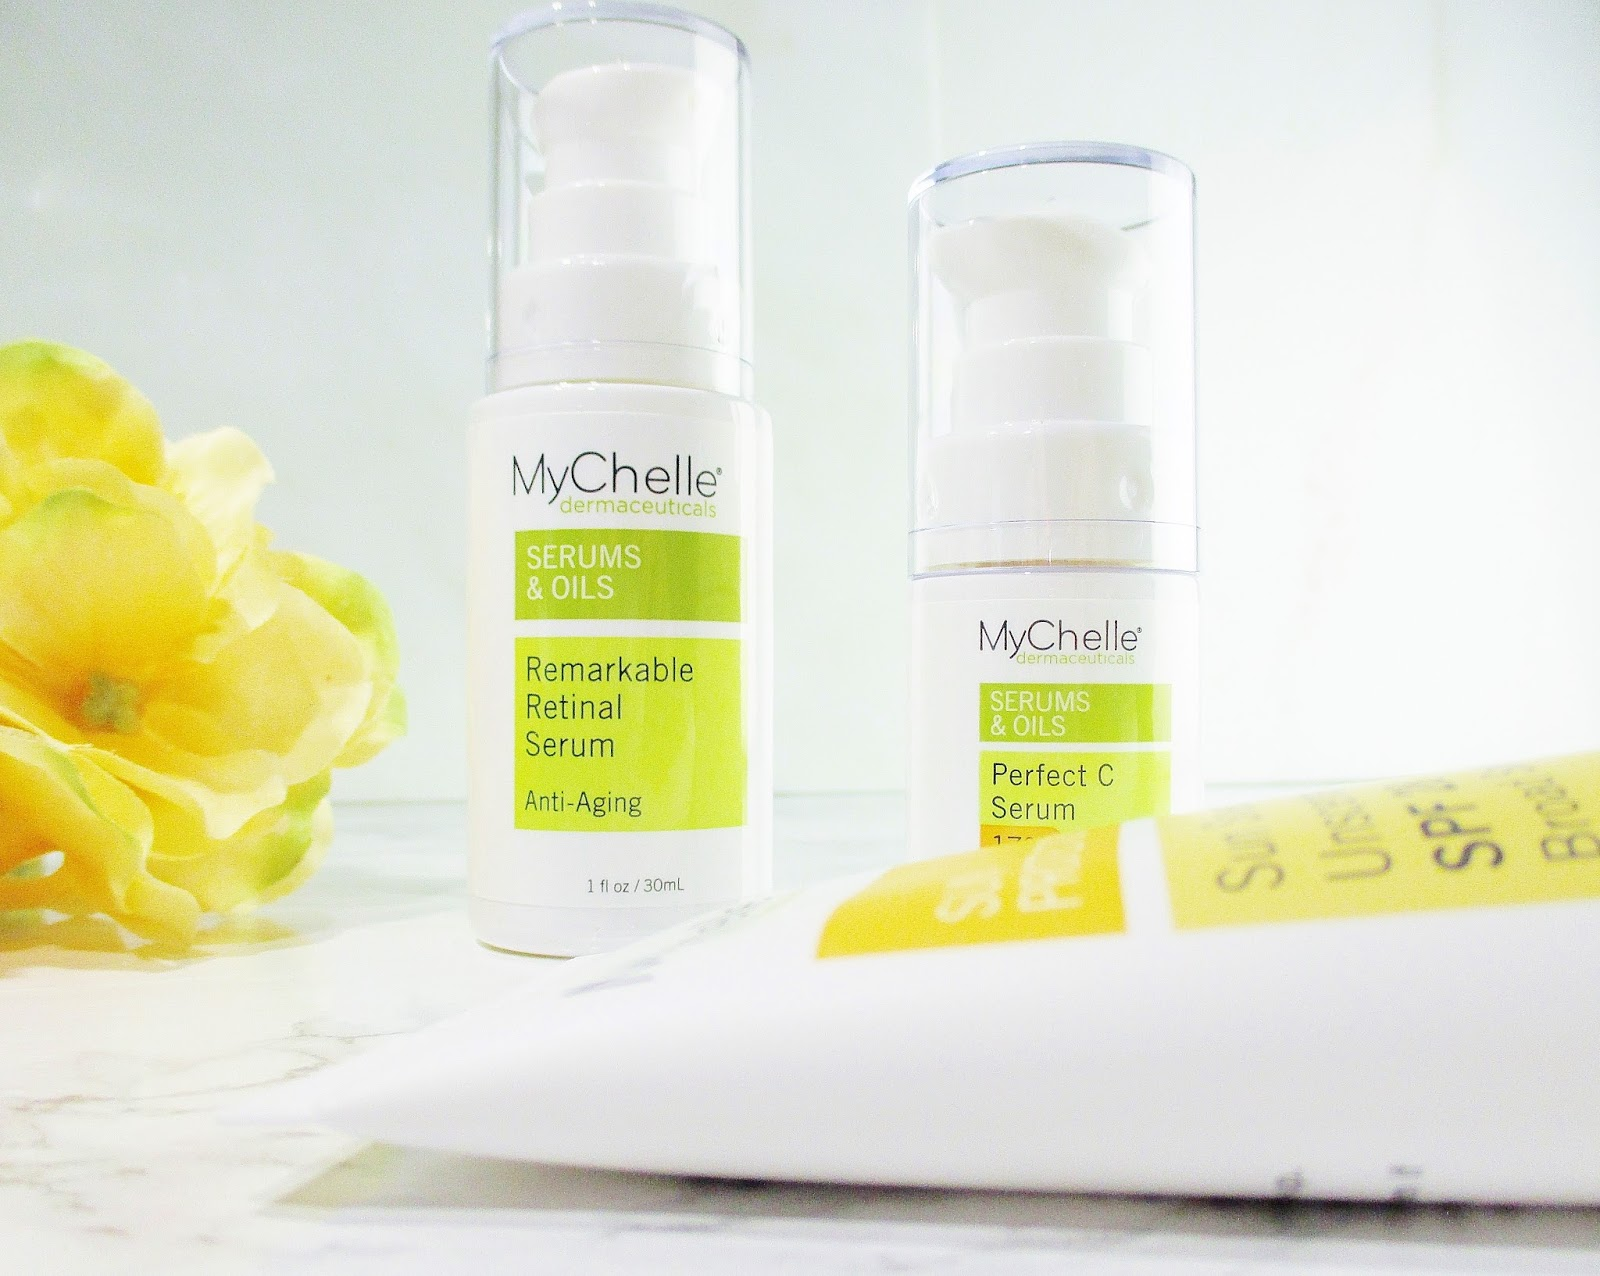 mychelle-dermaceuticals-skin-care-remarkable-retinol-serum